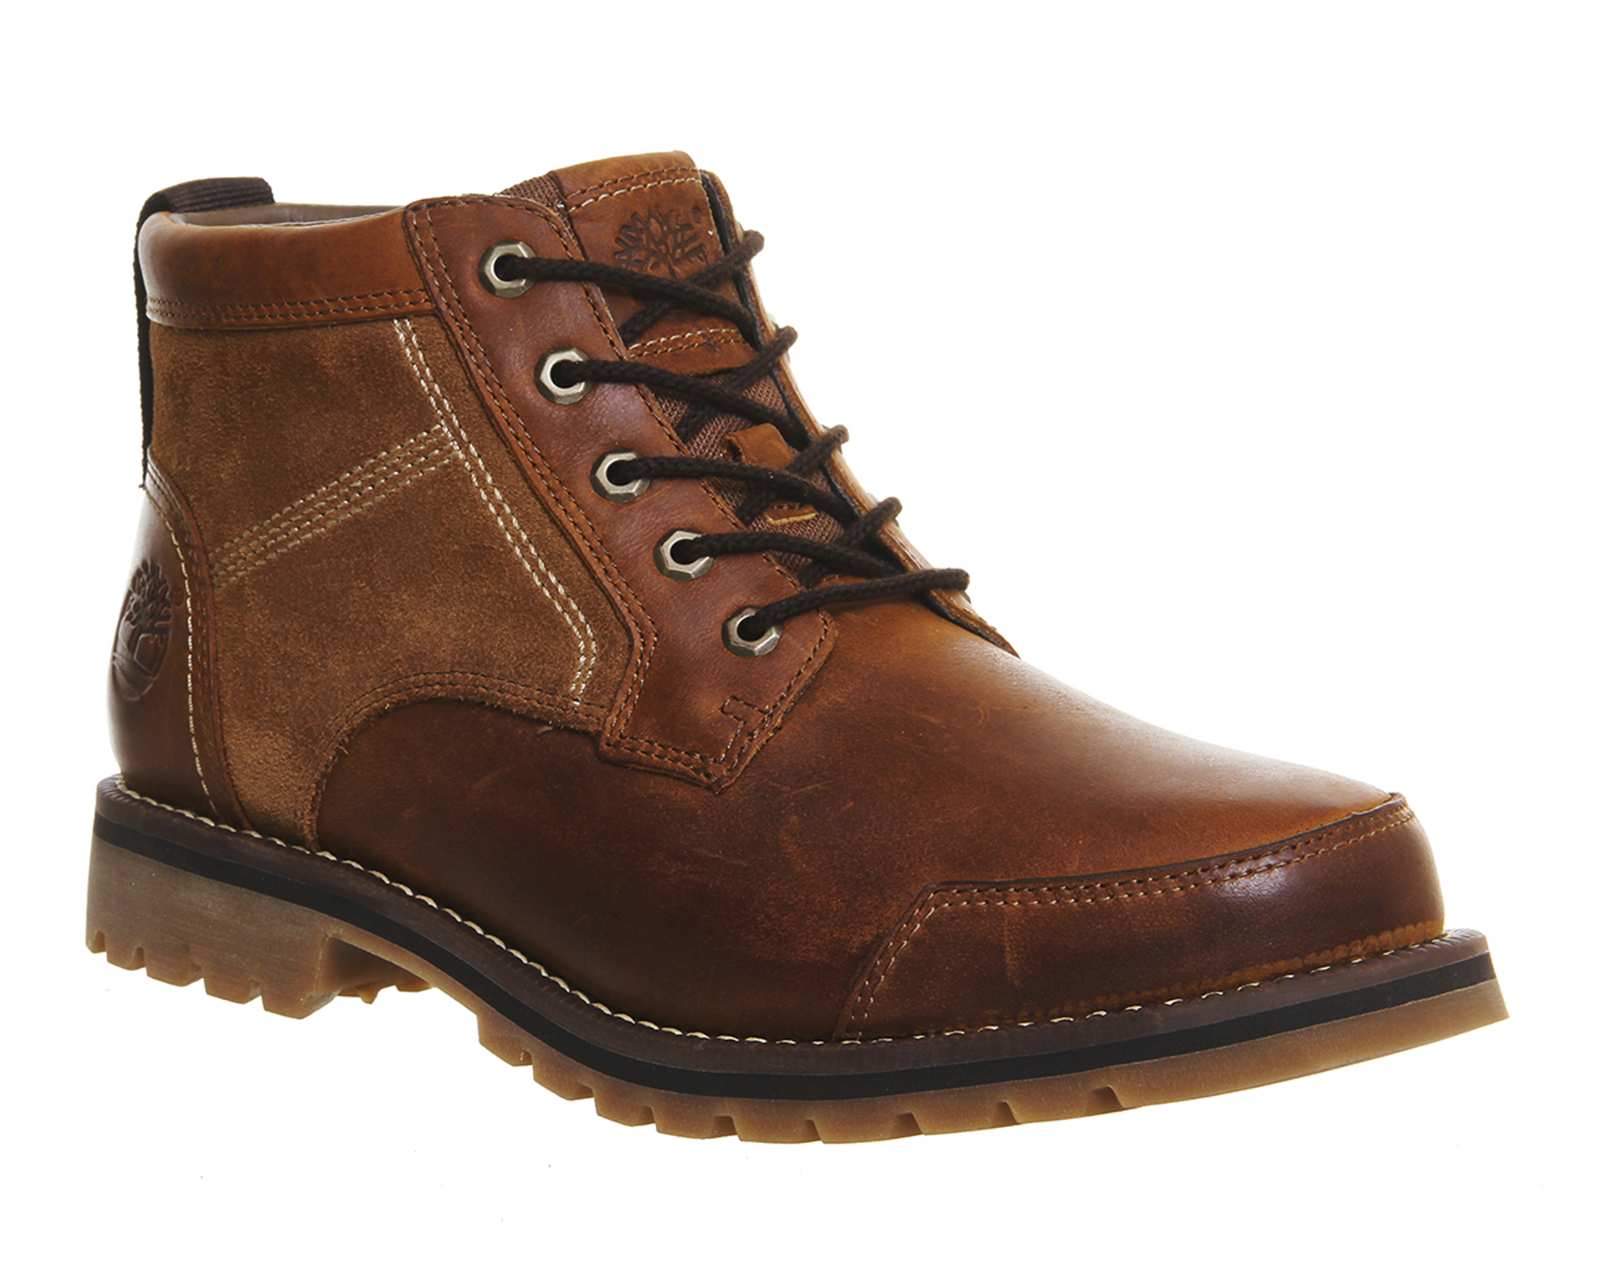 Di Timberland Mens Boots Chukka In Larchmont Quercia Pelle TnY8wA